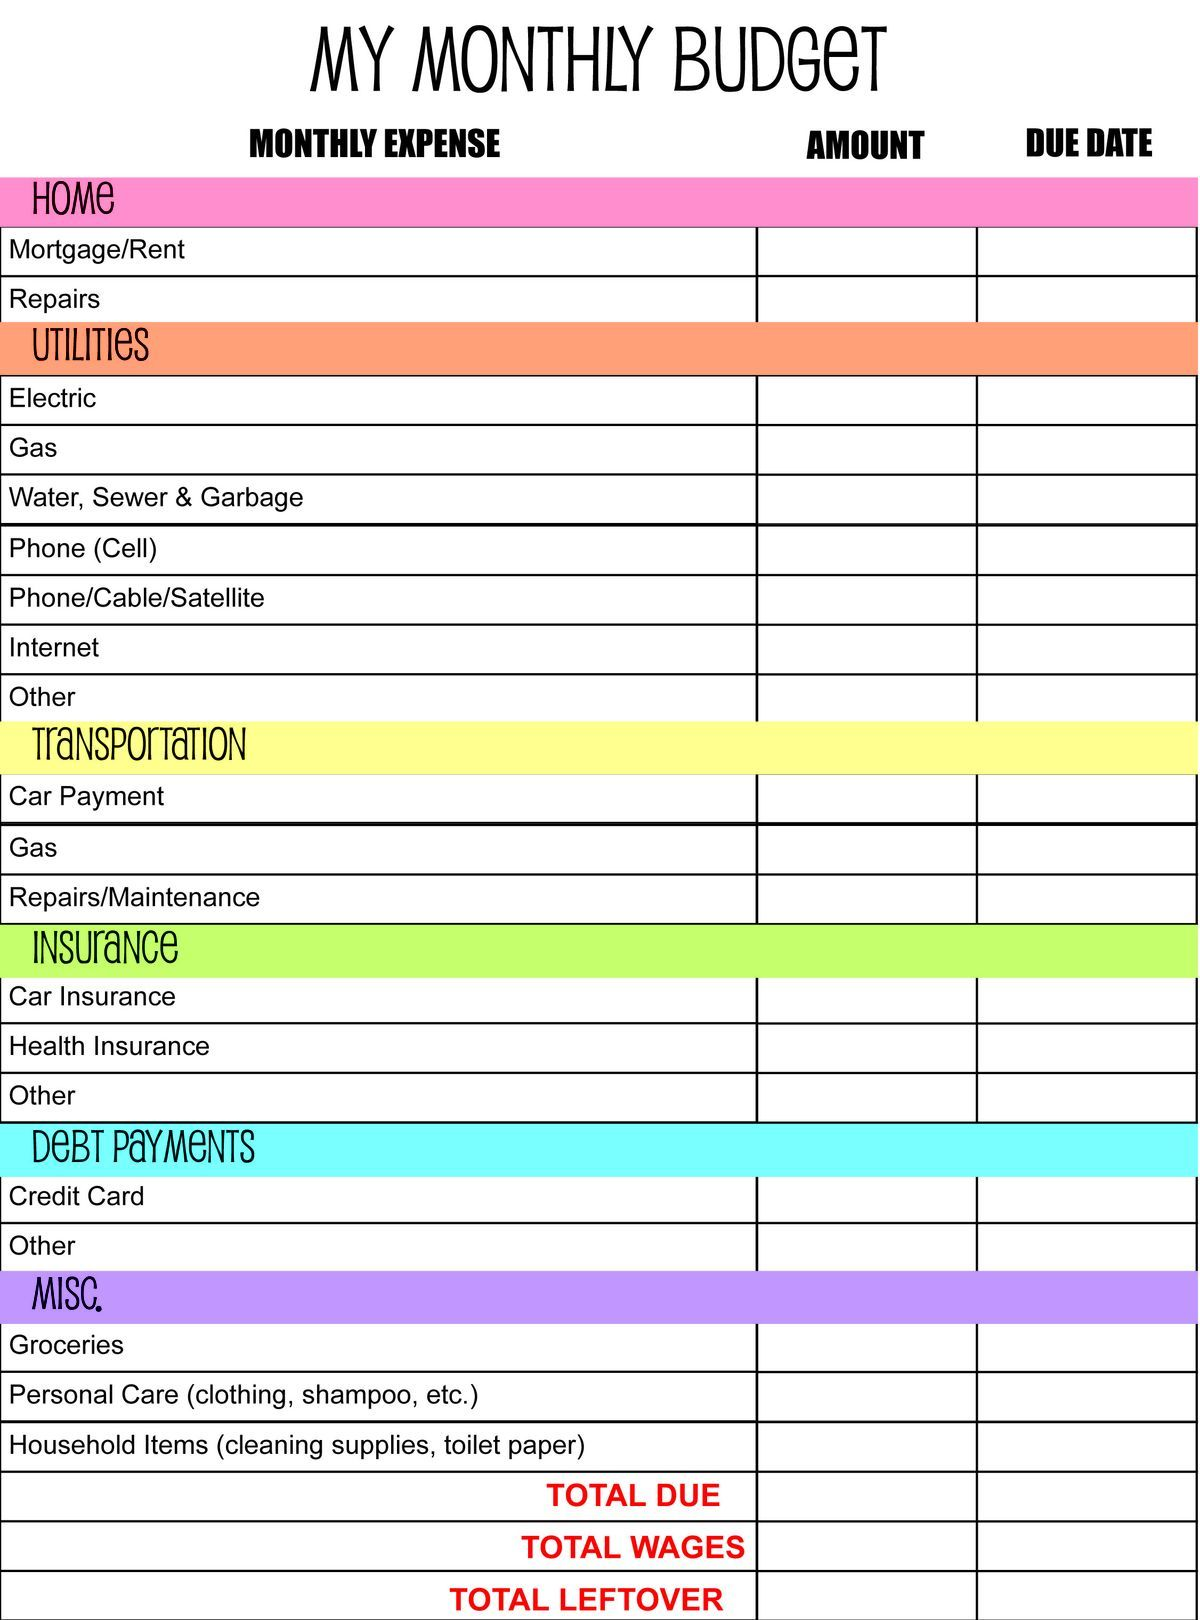 worksheet Expense Budget Worksheet monthly budget helpful pinterest budgeting and budget